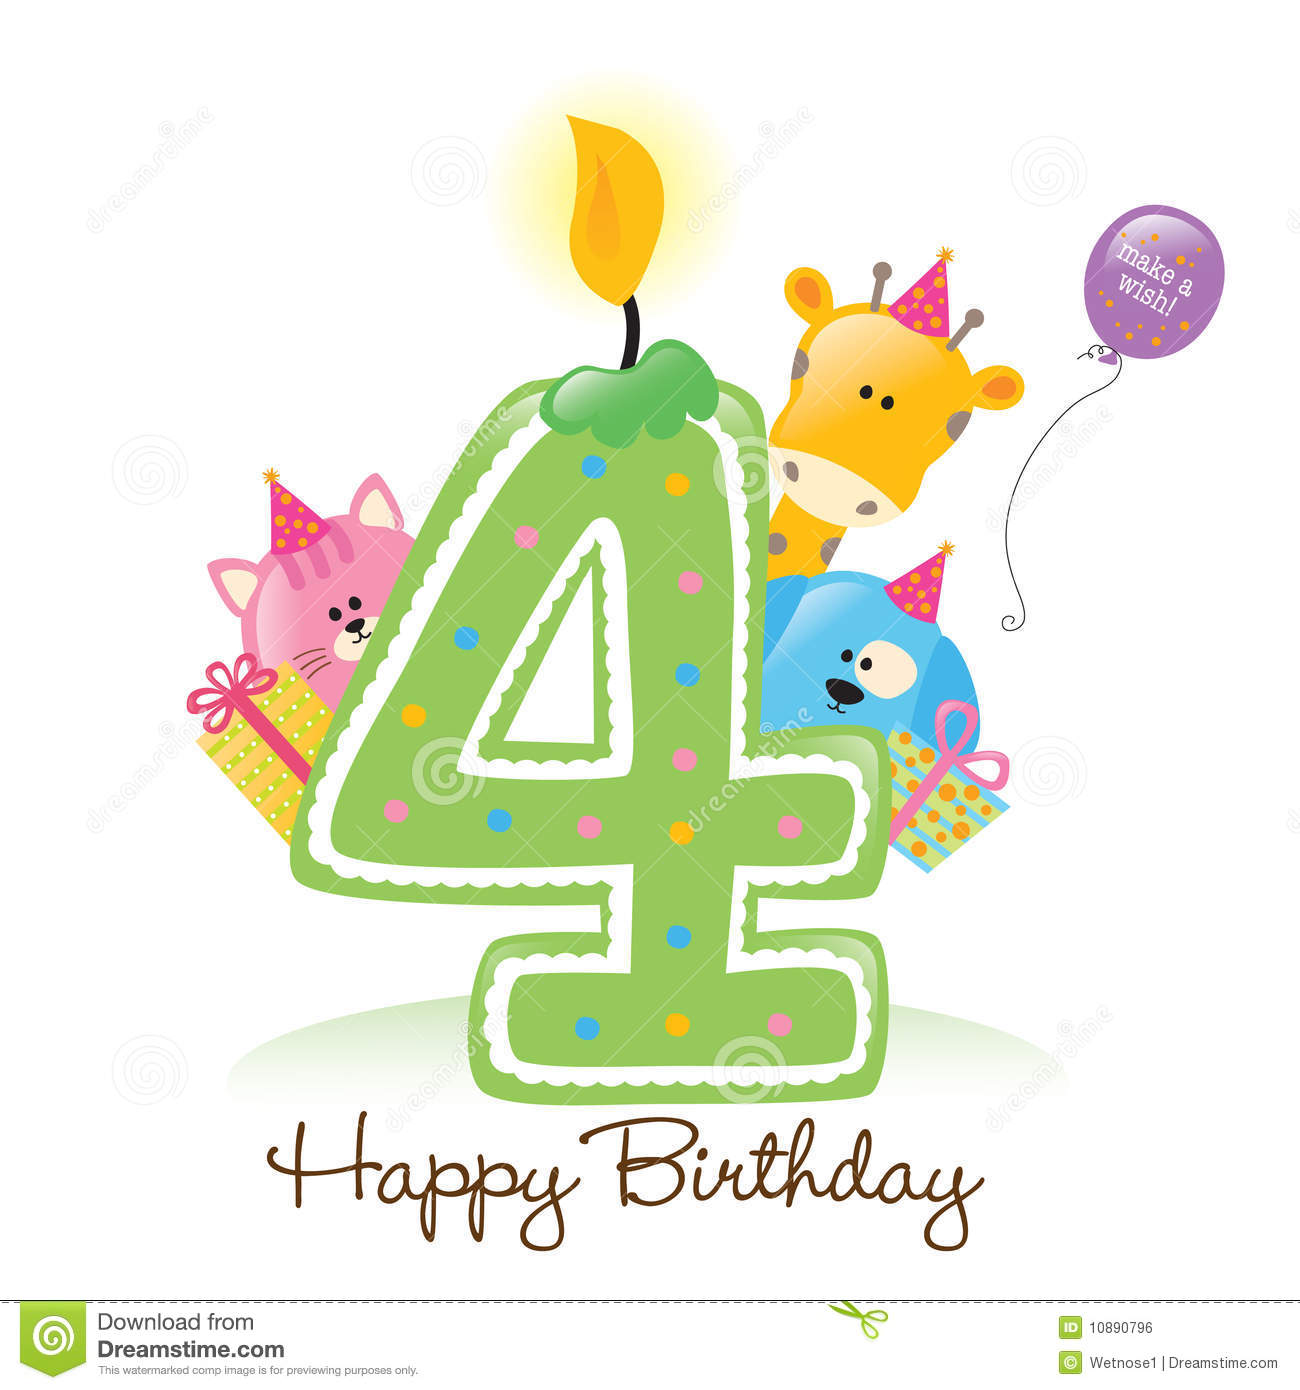 First Birthday Candle With Animals Stock Photo: Happy Birthday Candle And Animals Royalty Free Stock Image